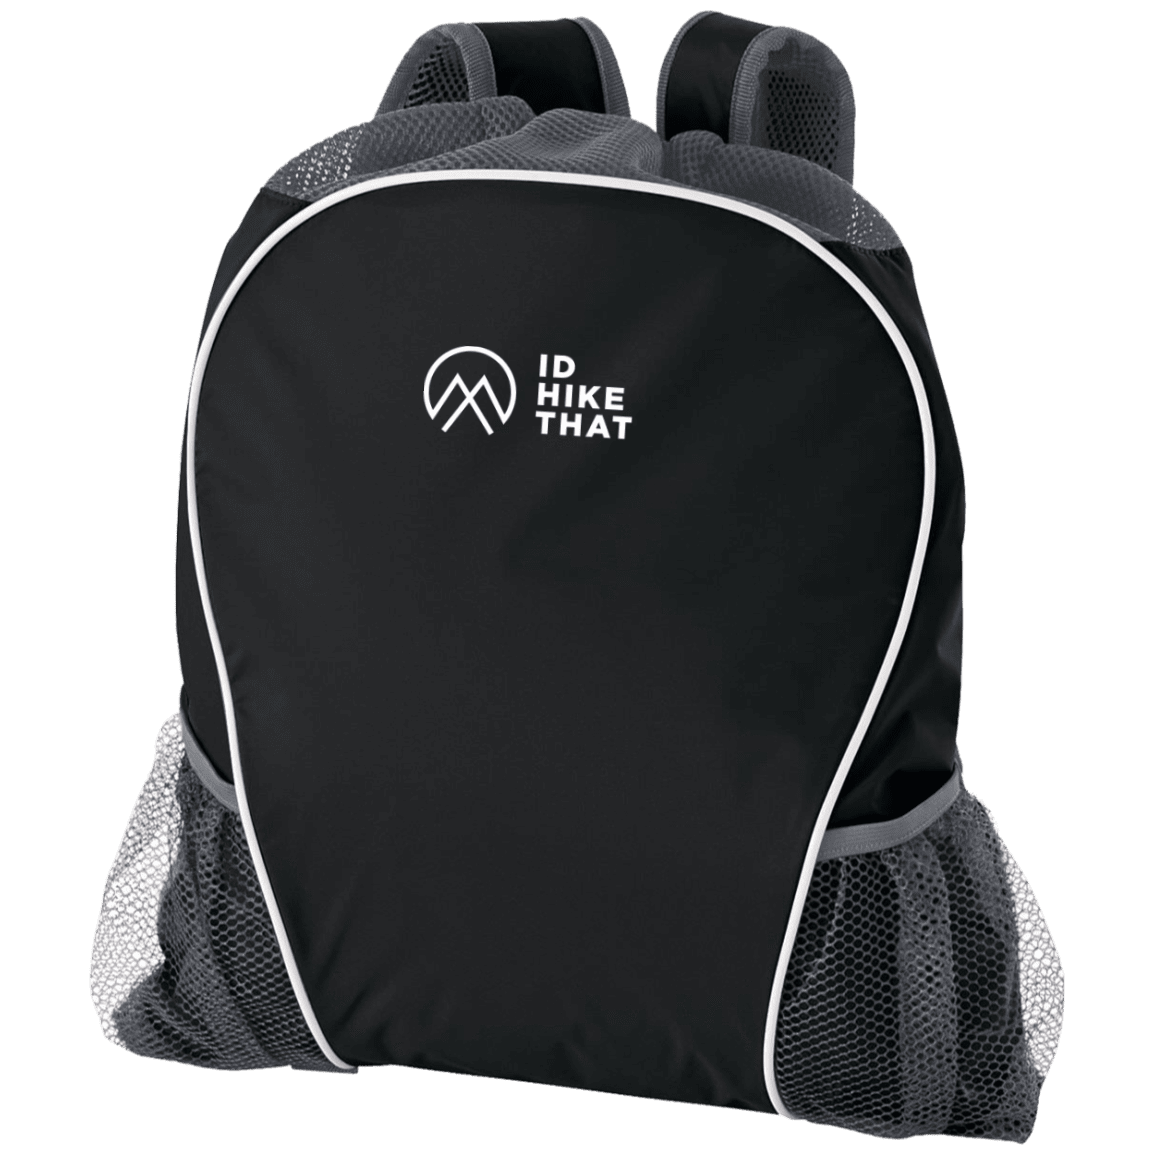 Bags Black/Graphite / One Size Rig Bag - I'd Hike That - Water Resistant